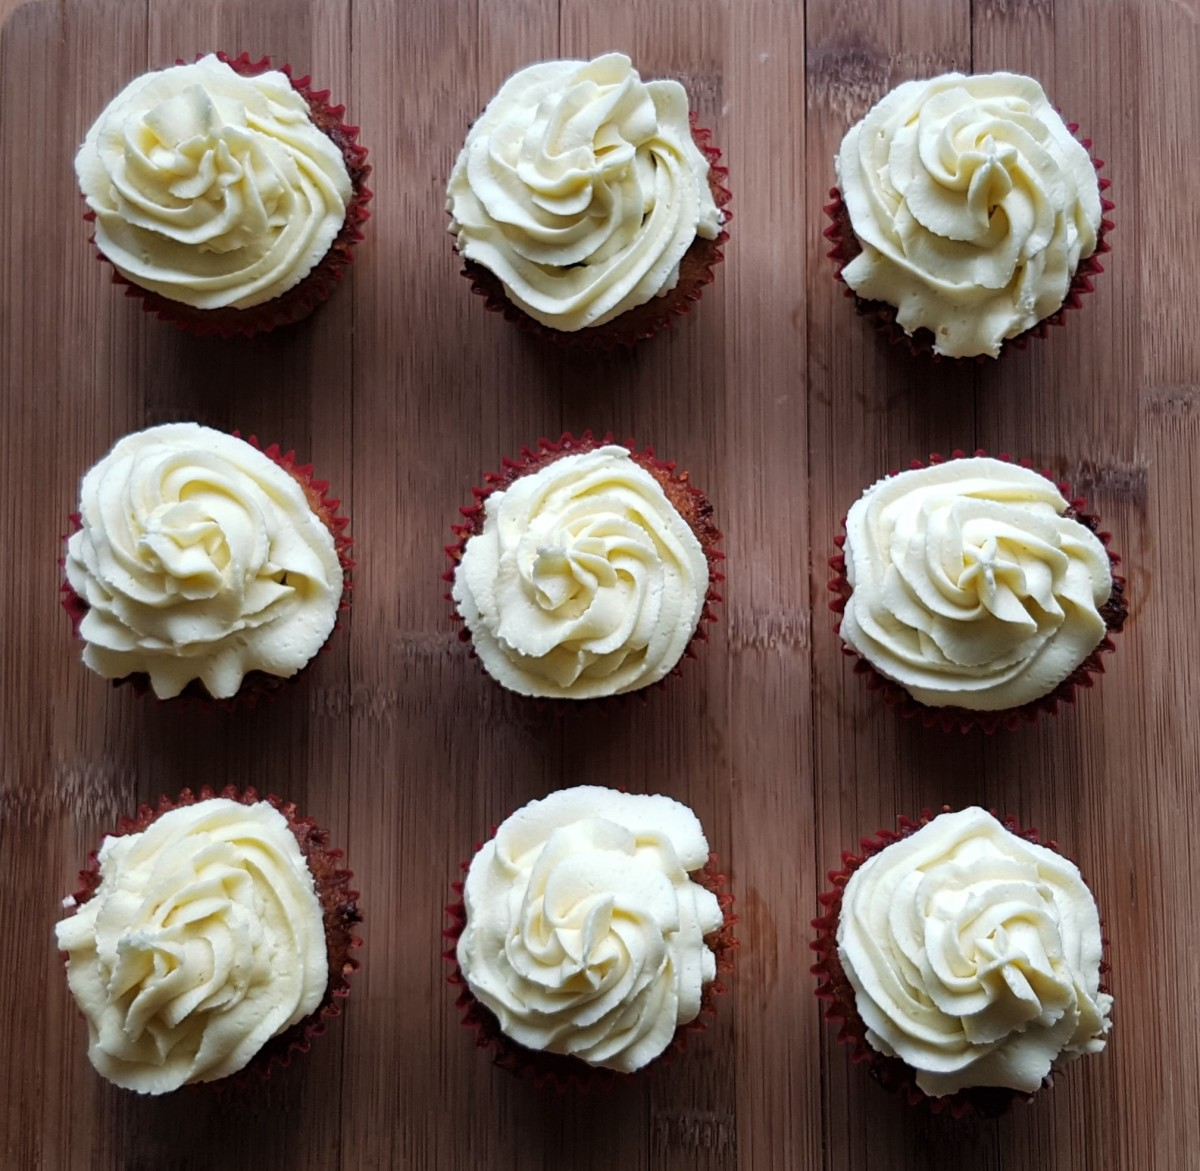 Carrot cake cupcakes with white chocolate buttercream frosting